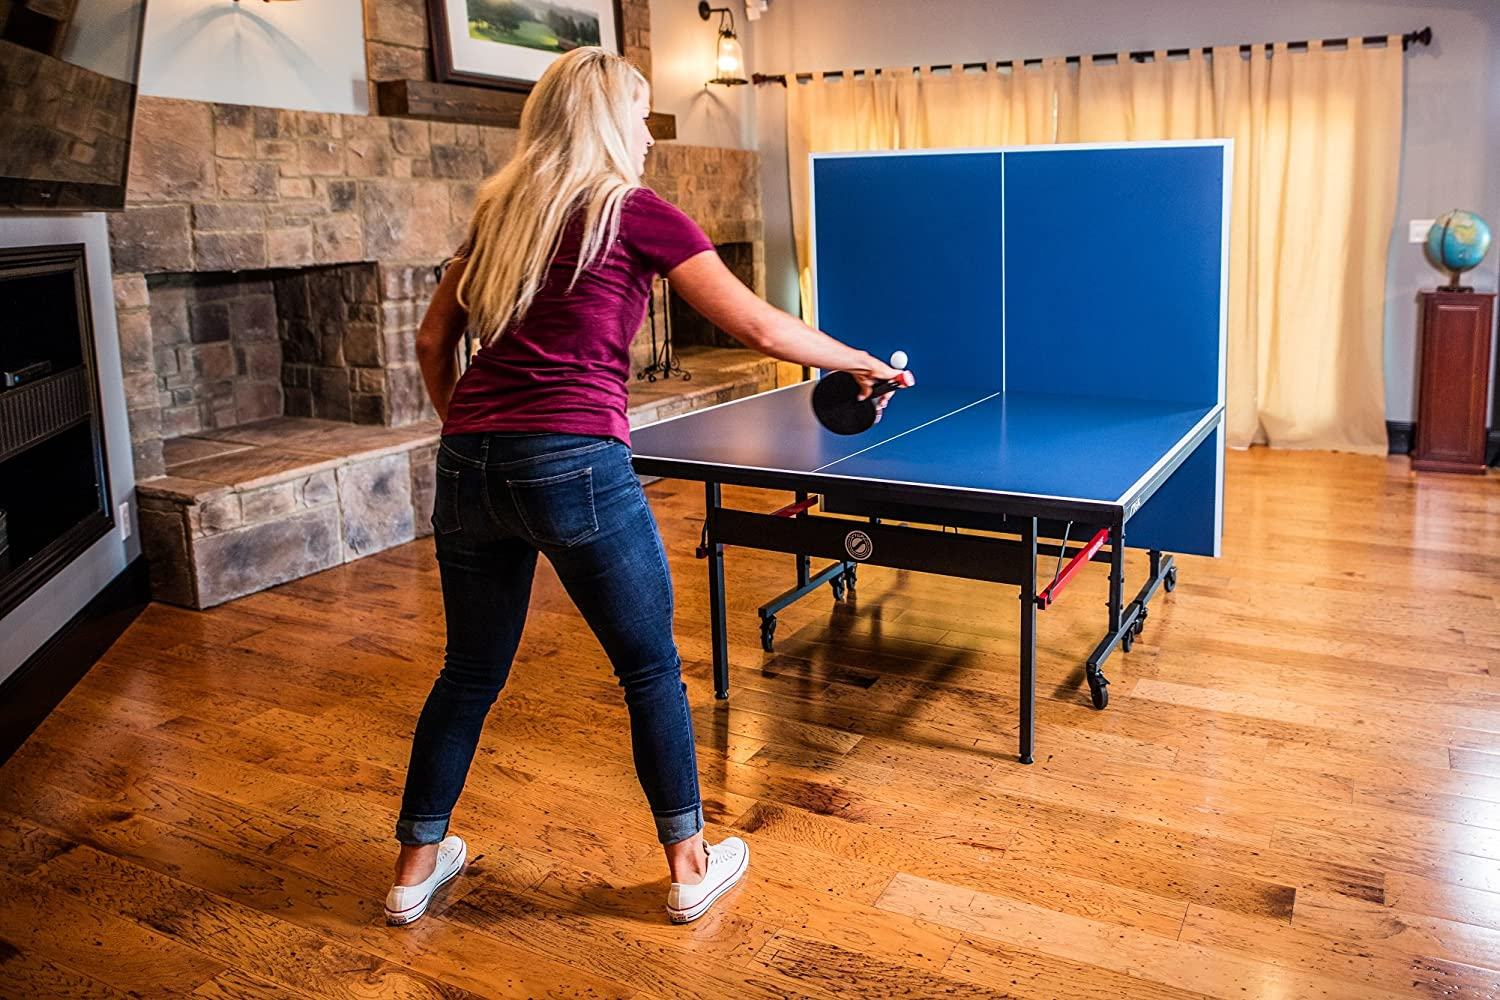 stiga-advantage-table-tennis-table-reviews-4398